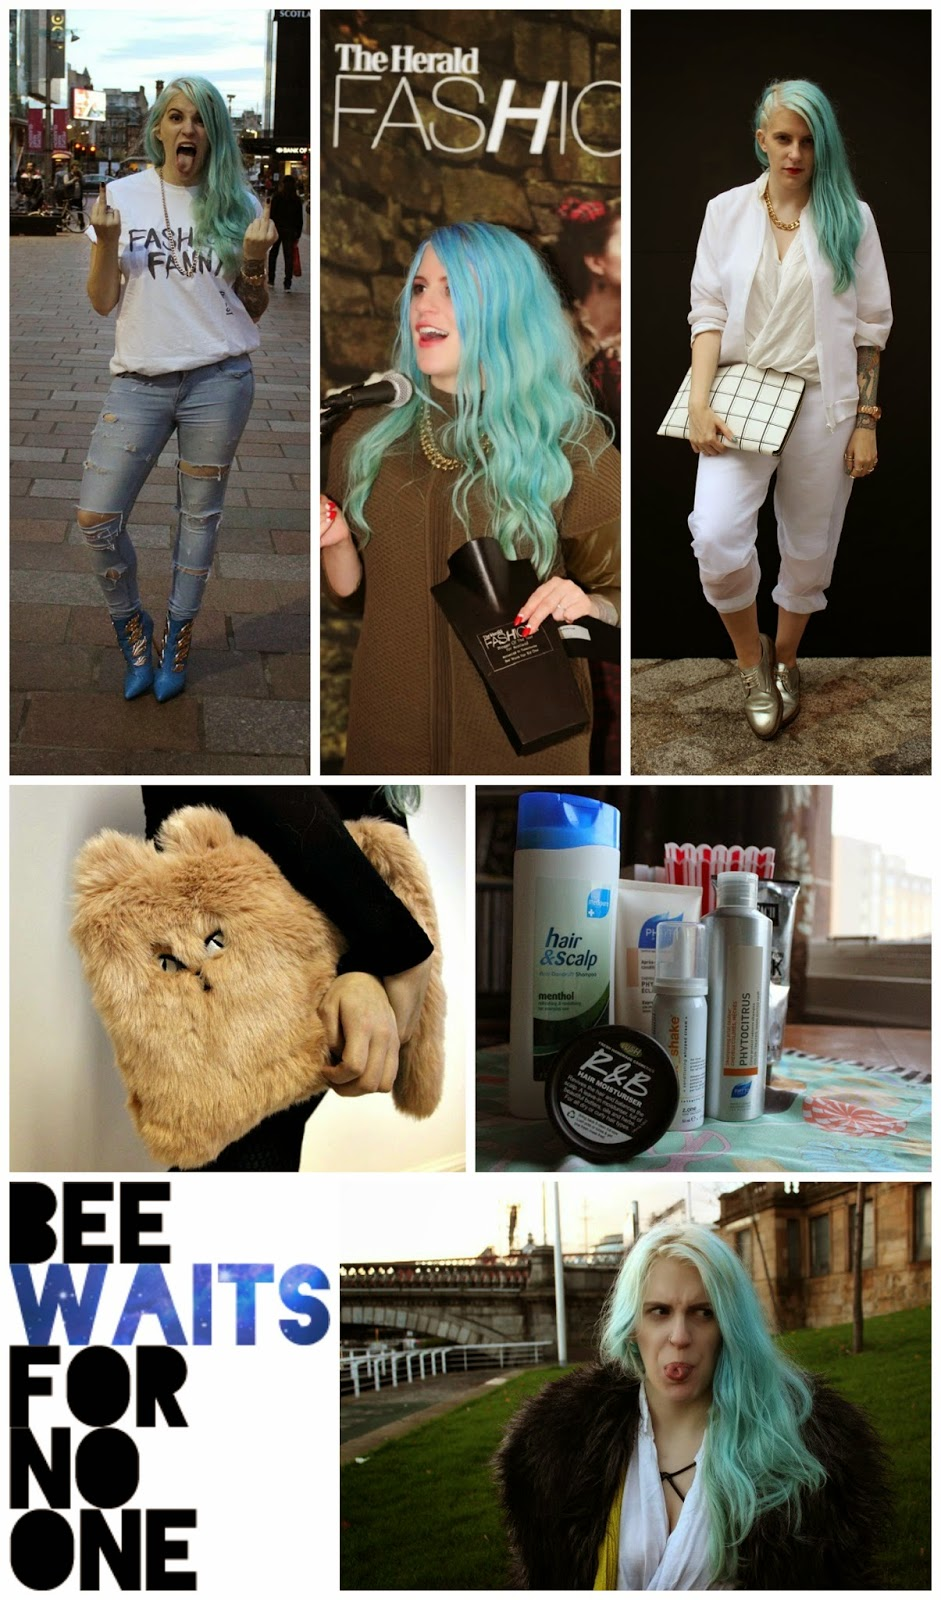 Blog crush, blogger crushes, favourite bloggers, Bee Waits For No One, Bee Waits, Blue Hair, Scottish blogger